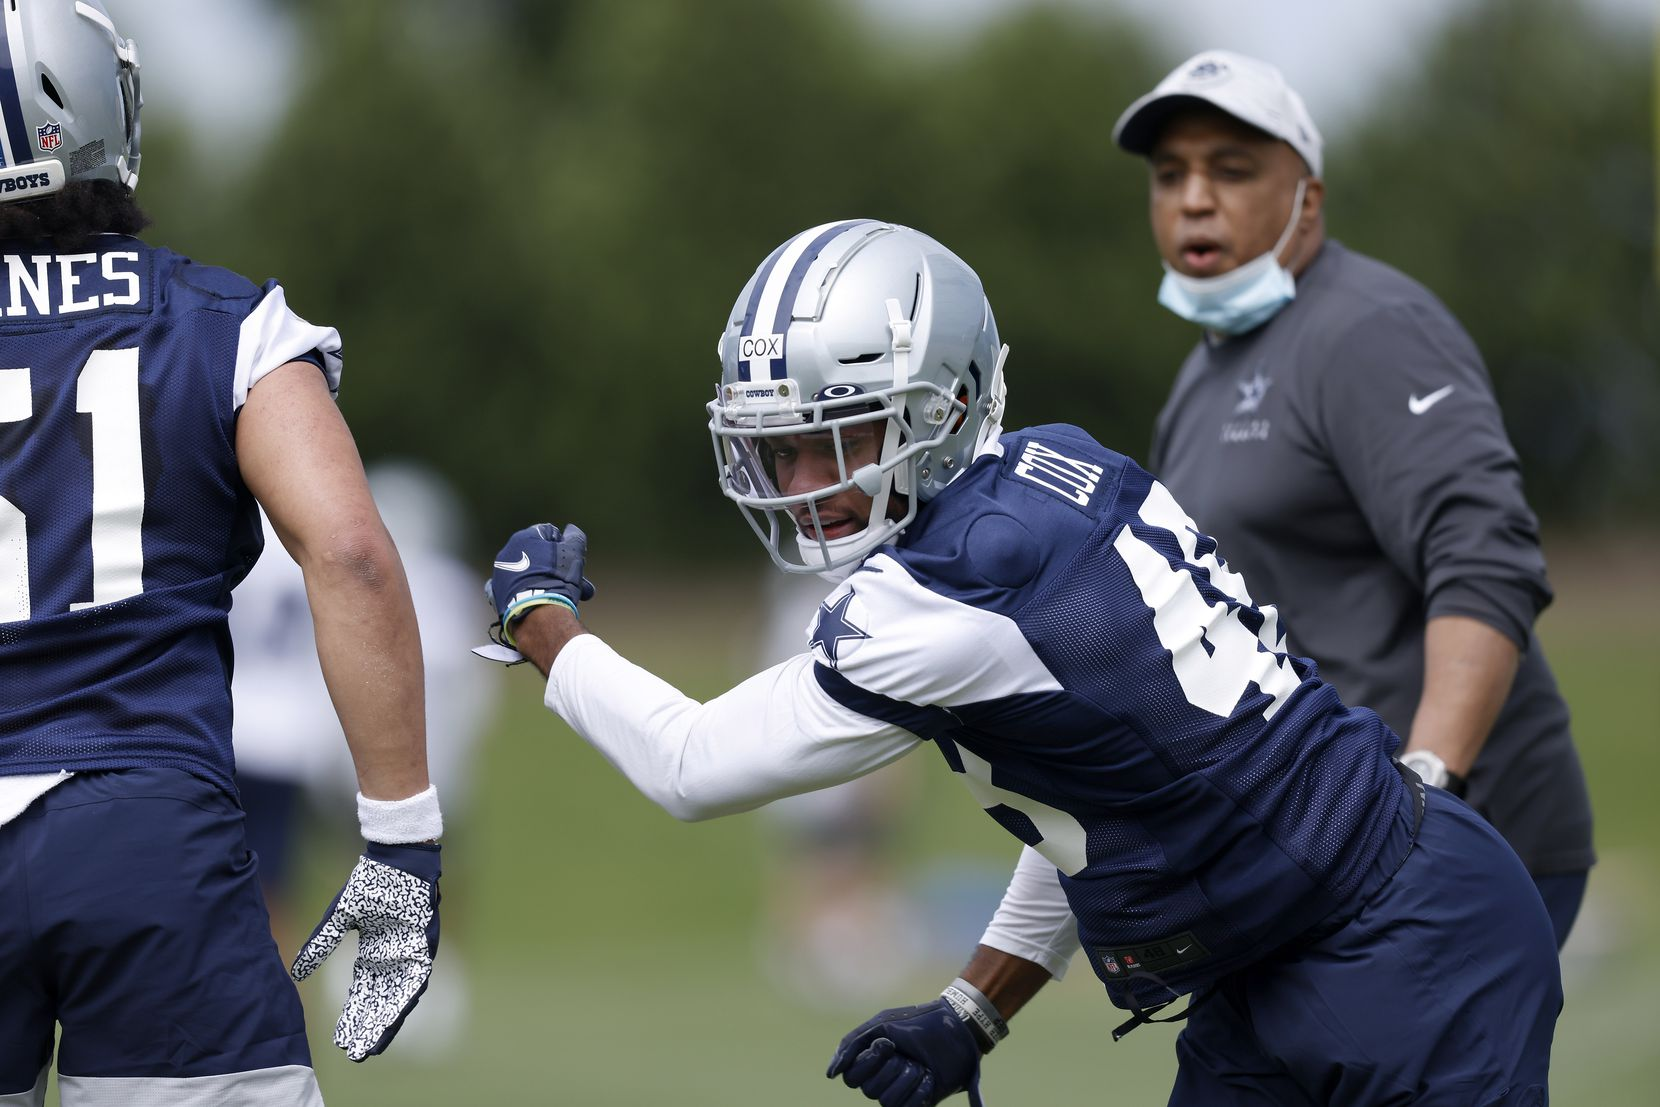 Dallas Cowboys rookie linebacker Jabril Cox (48) runs through drills at rookie minicamp at the The Star in Frisco, Texas, Friday, May 14, 2021. (Tom Fox/The Dallas Morning News)